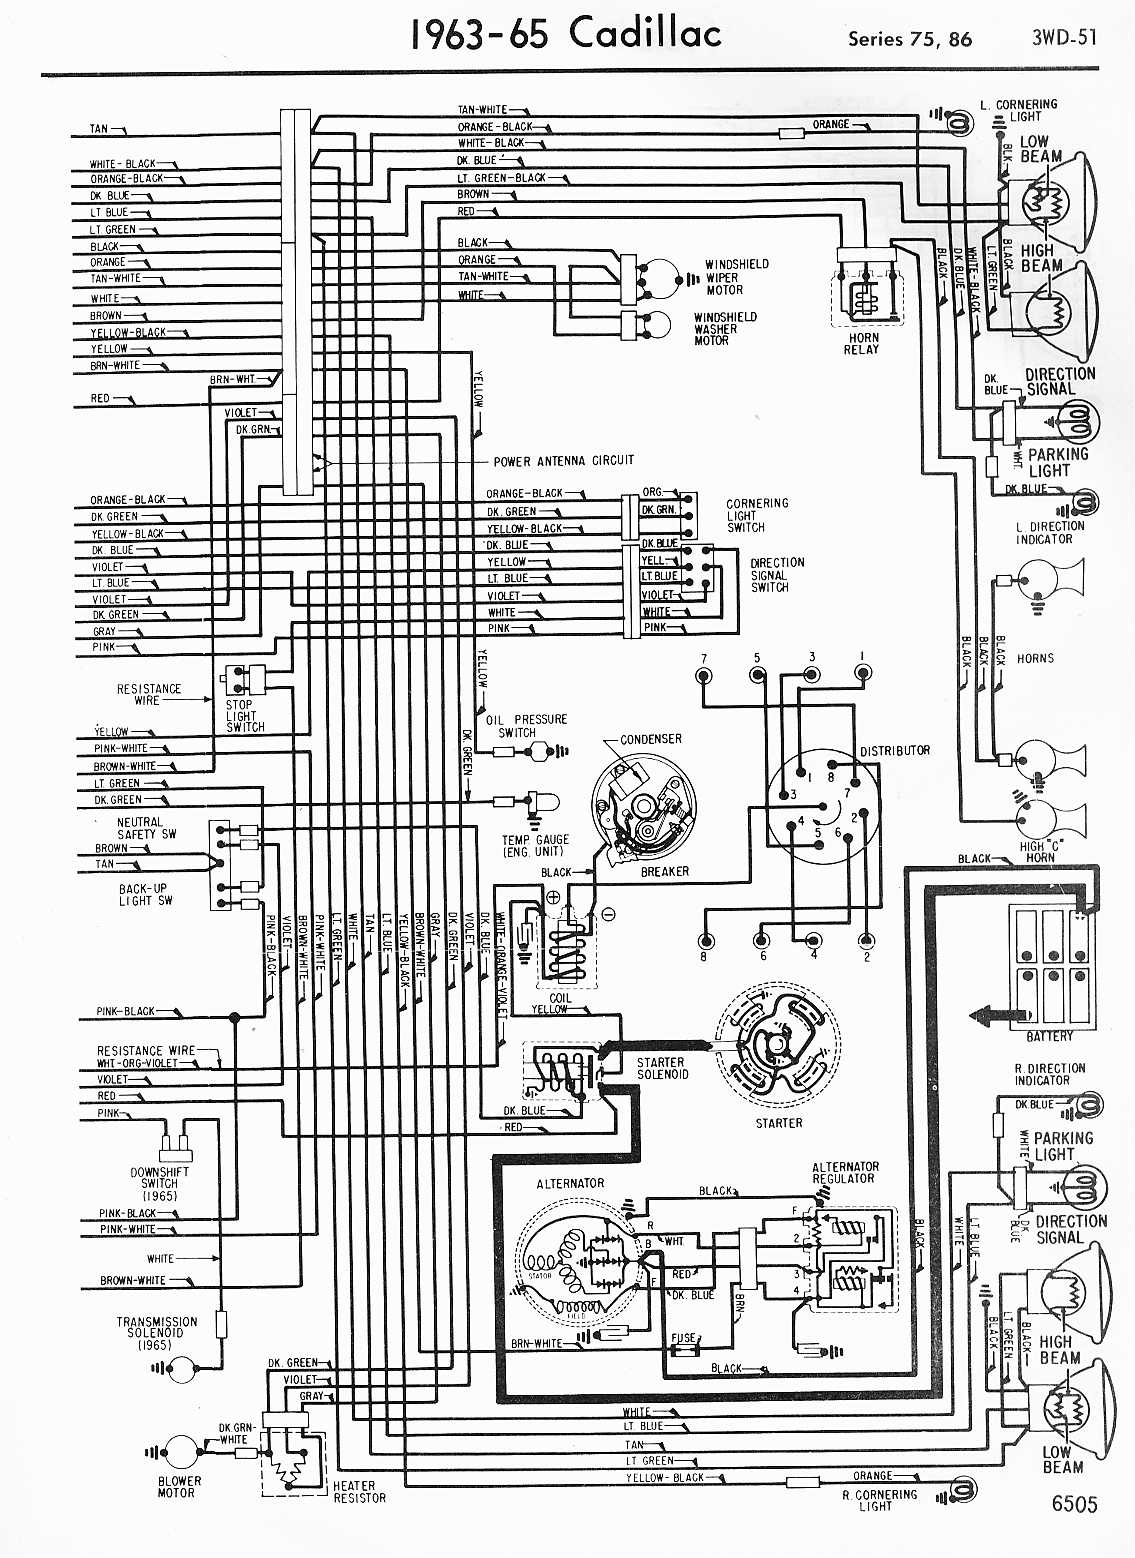 68 cadillac wiring diagram all wiring diagram 1965 cadillac wiring diagram wiring diagrams best 1968 cadillac deville wiring diagram 68 cadillac wiring diagram